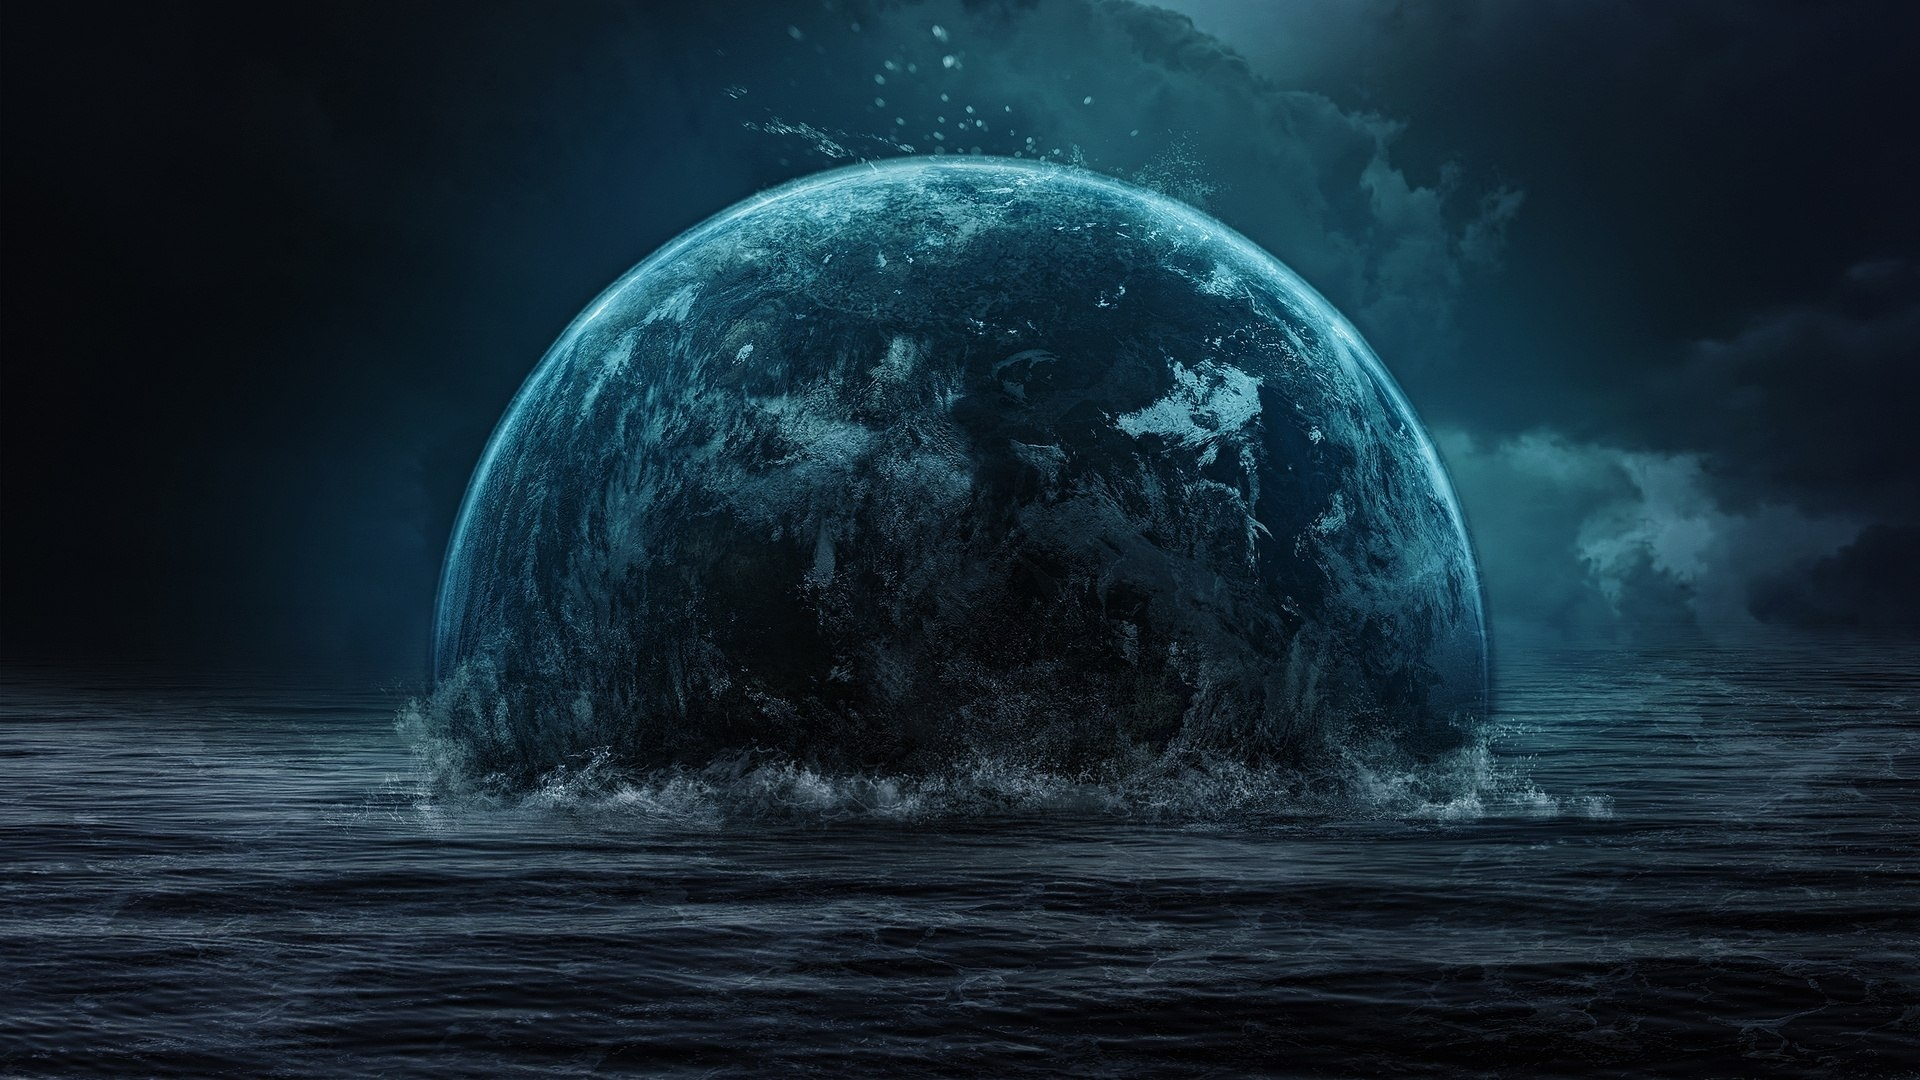 Image: planet, water, sky